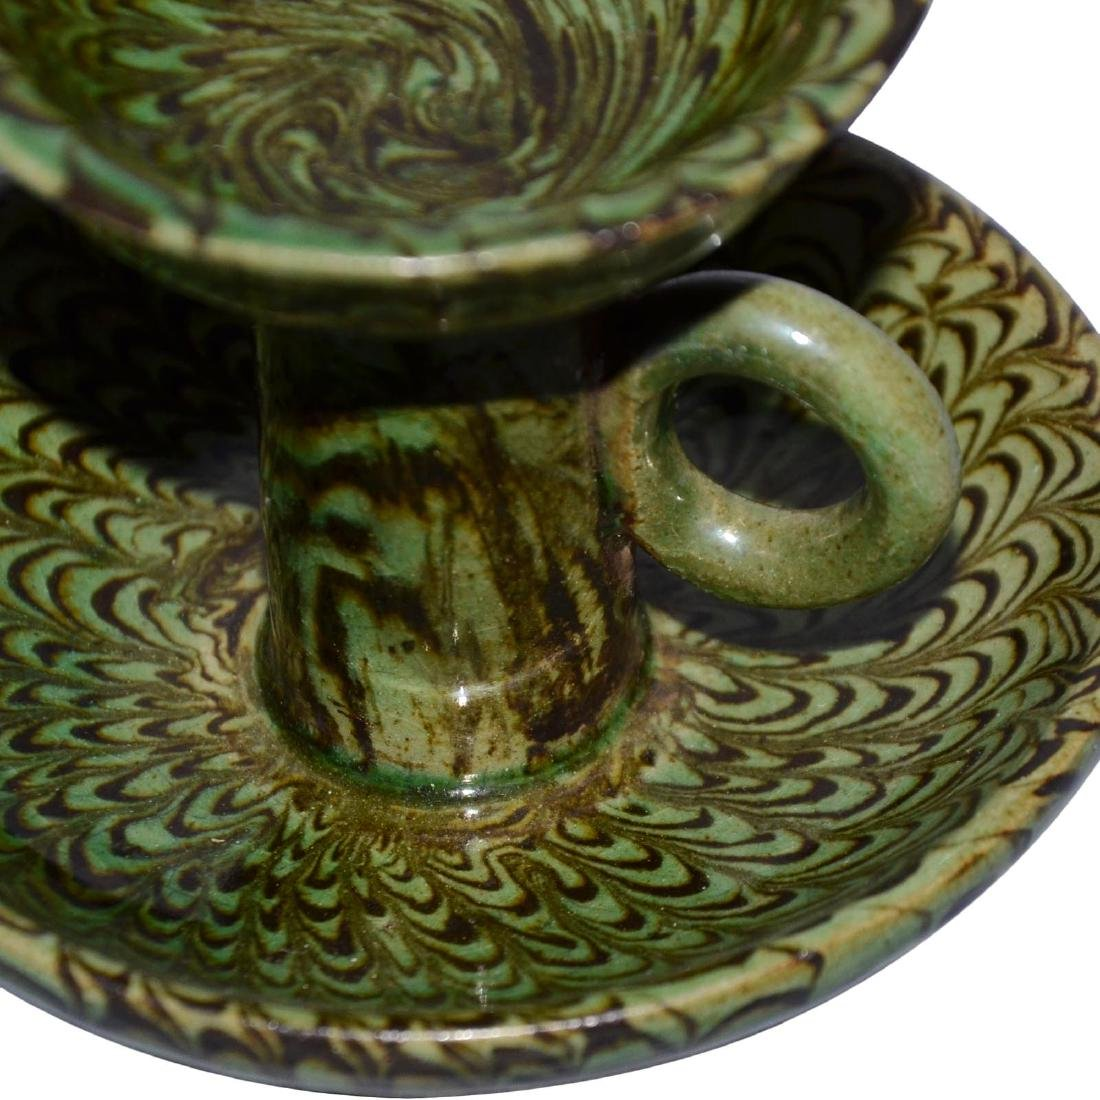 Song, A Rare Green-Glazed Marbled Pottery Lamp with - 8